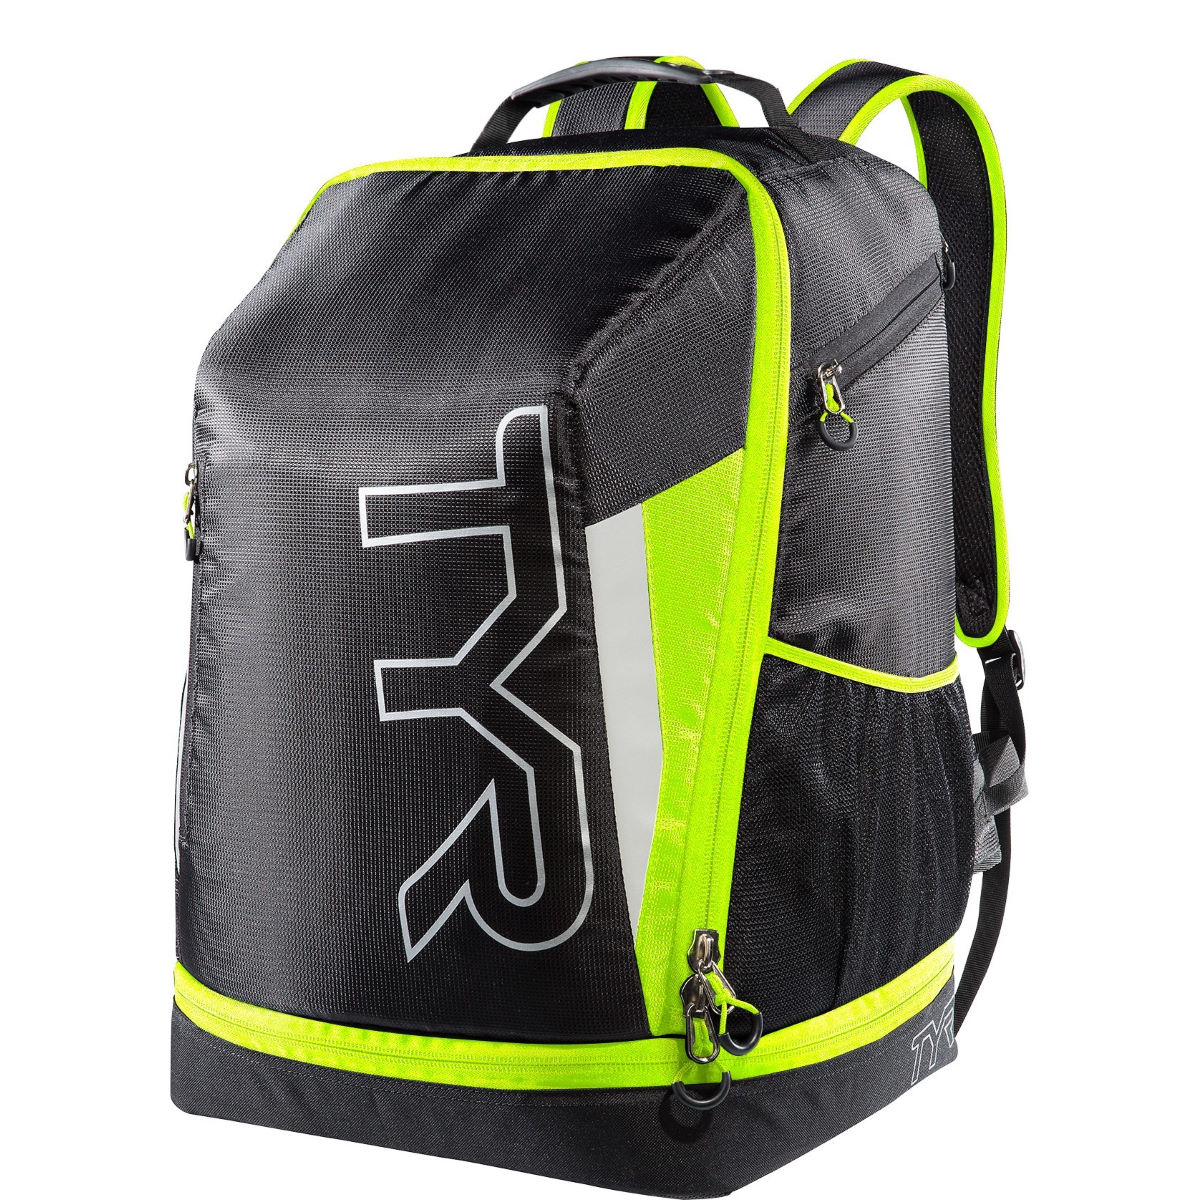 TYR Apex Transition Bag - Mochilas de transición